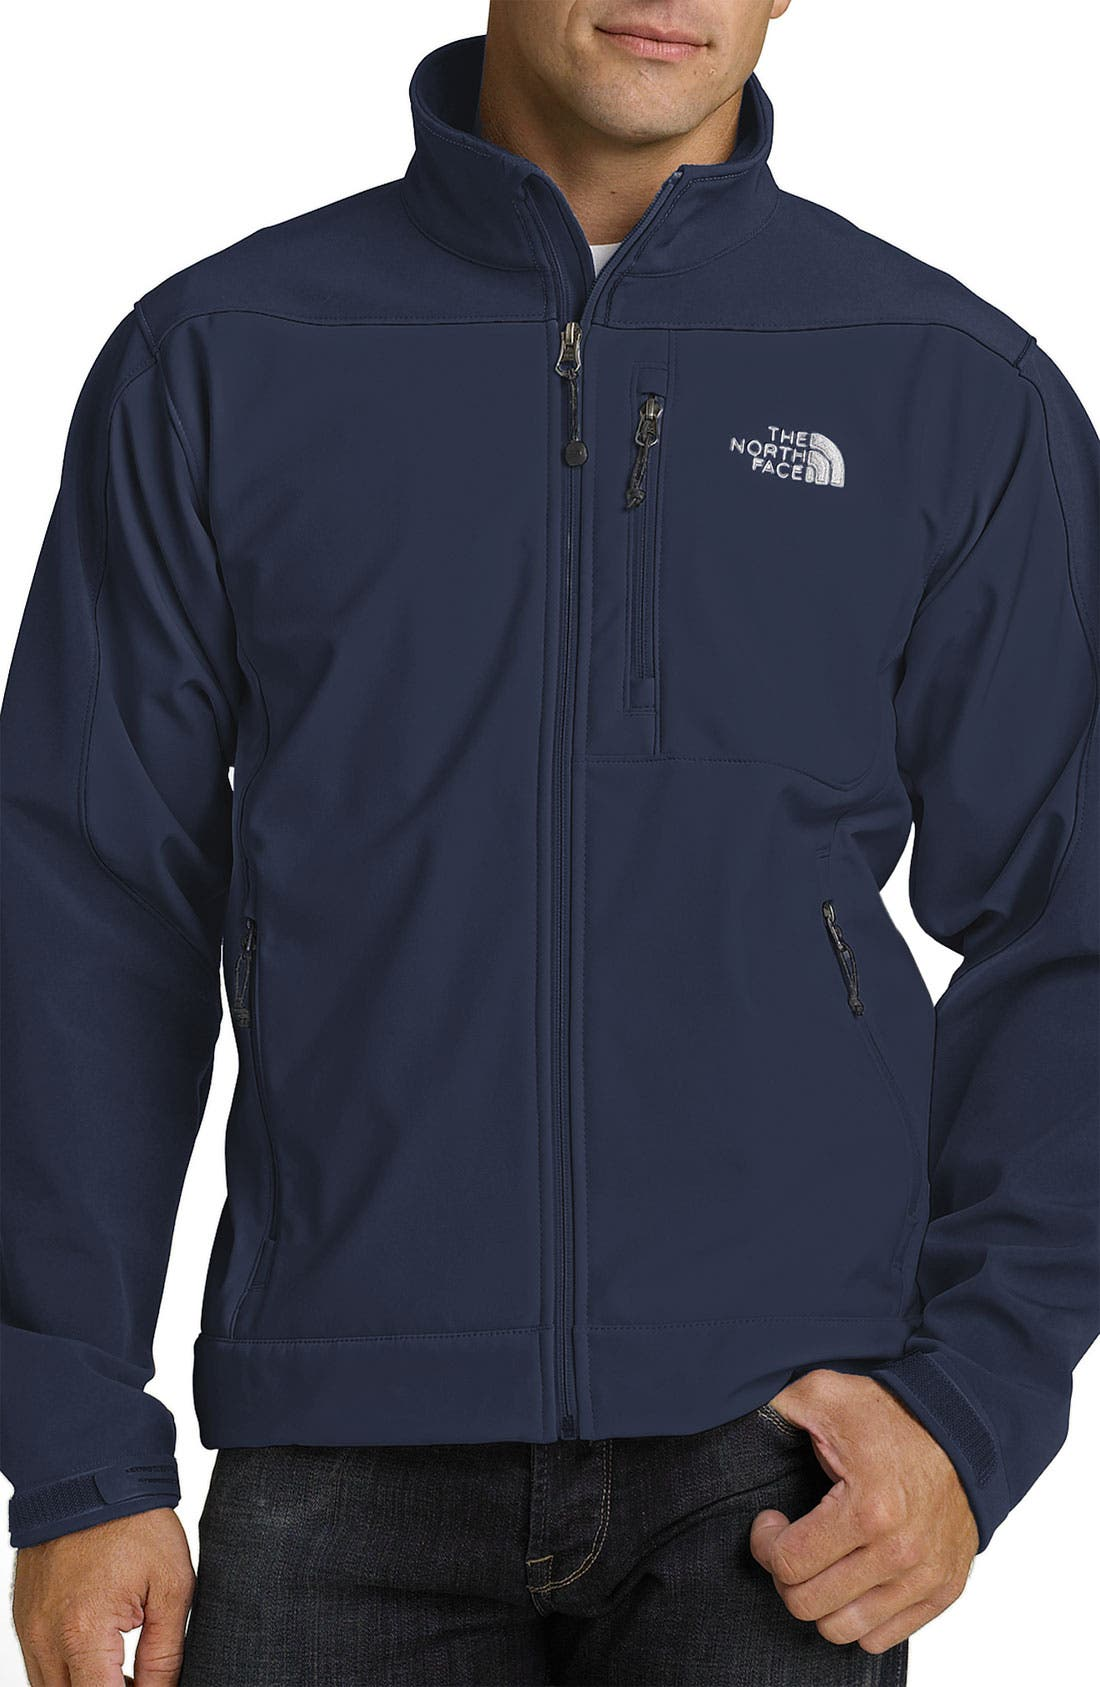 Main Image - The North Face 'Apex Bionic' Softshell Jacket